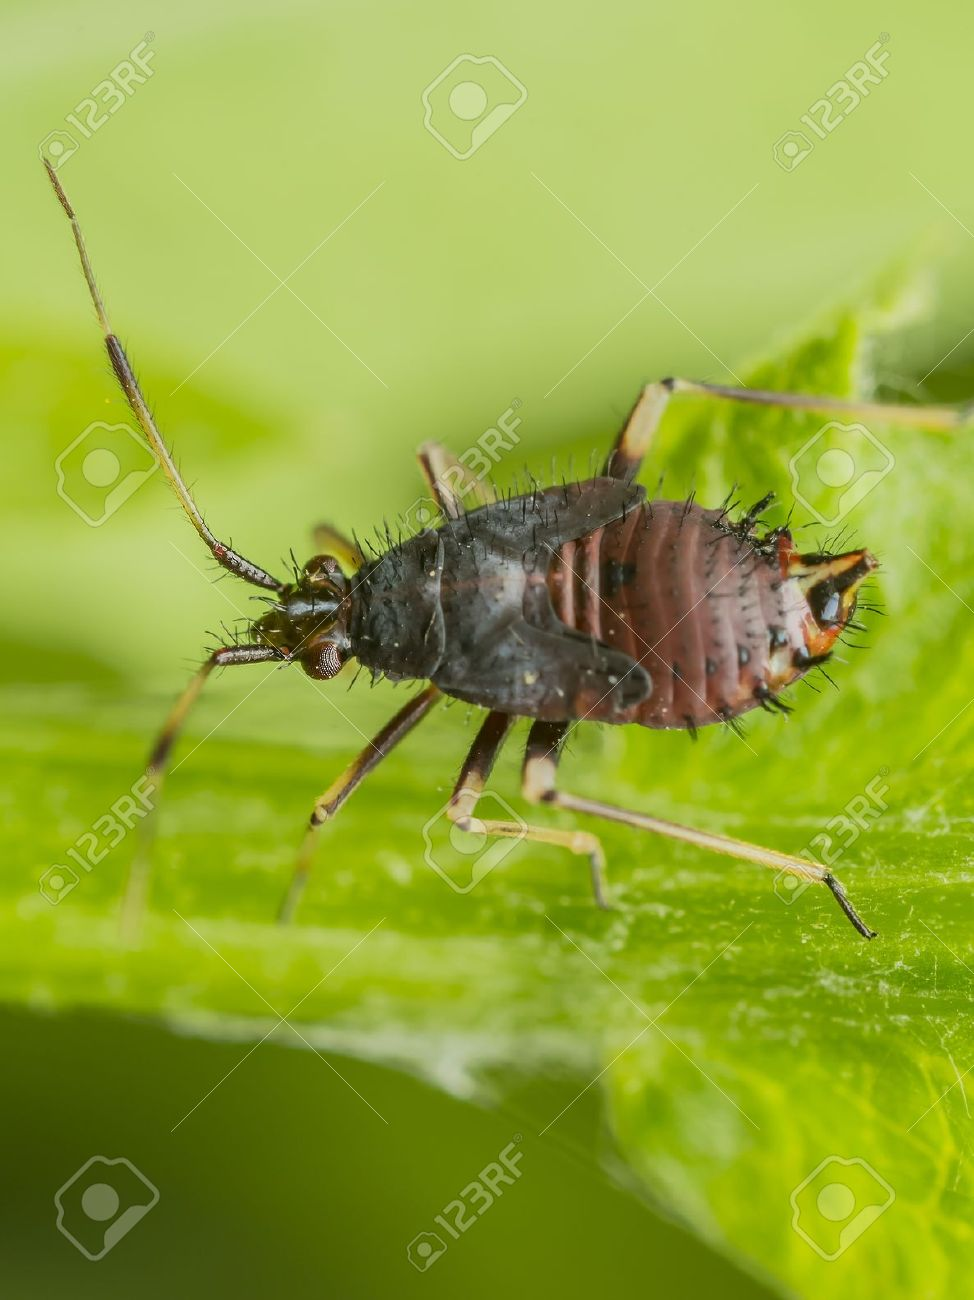 Springtail Insect On A Green Leaf Springtails Collembola form